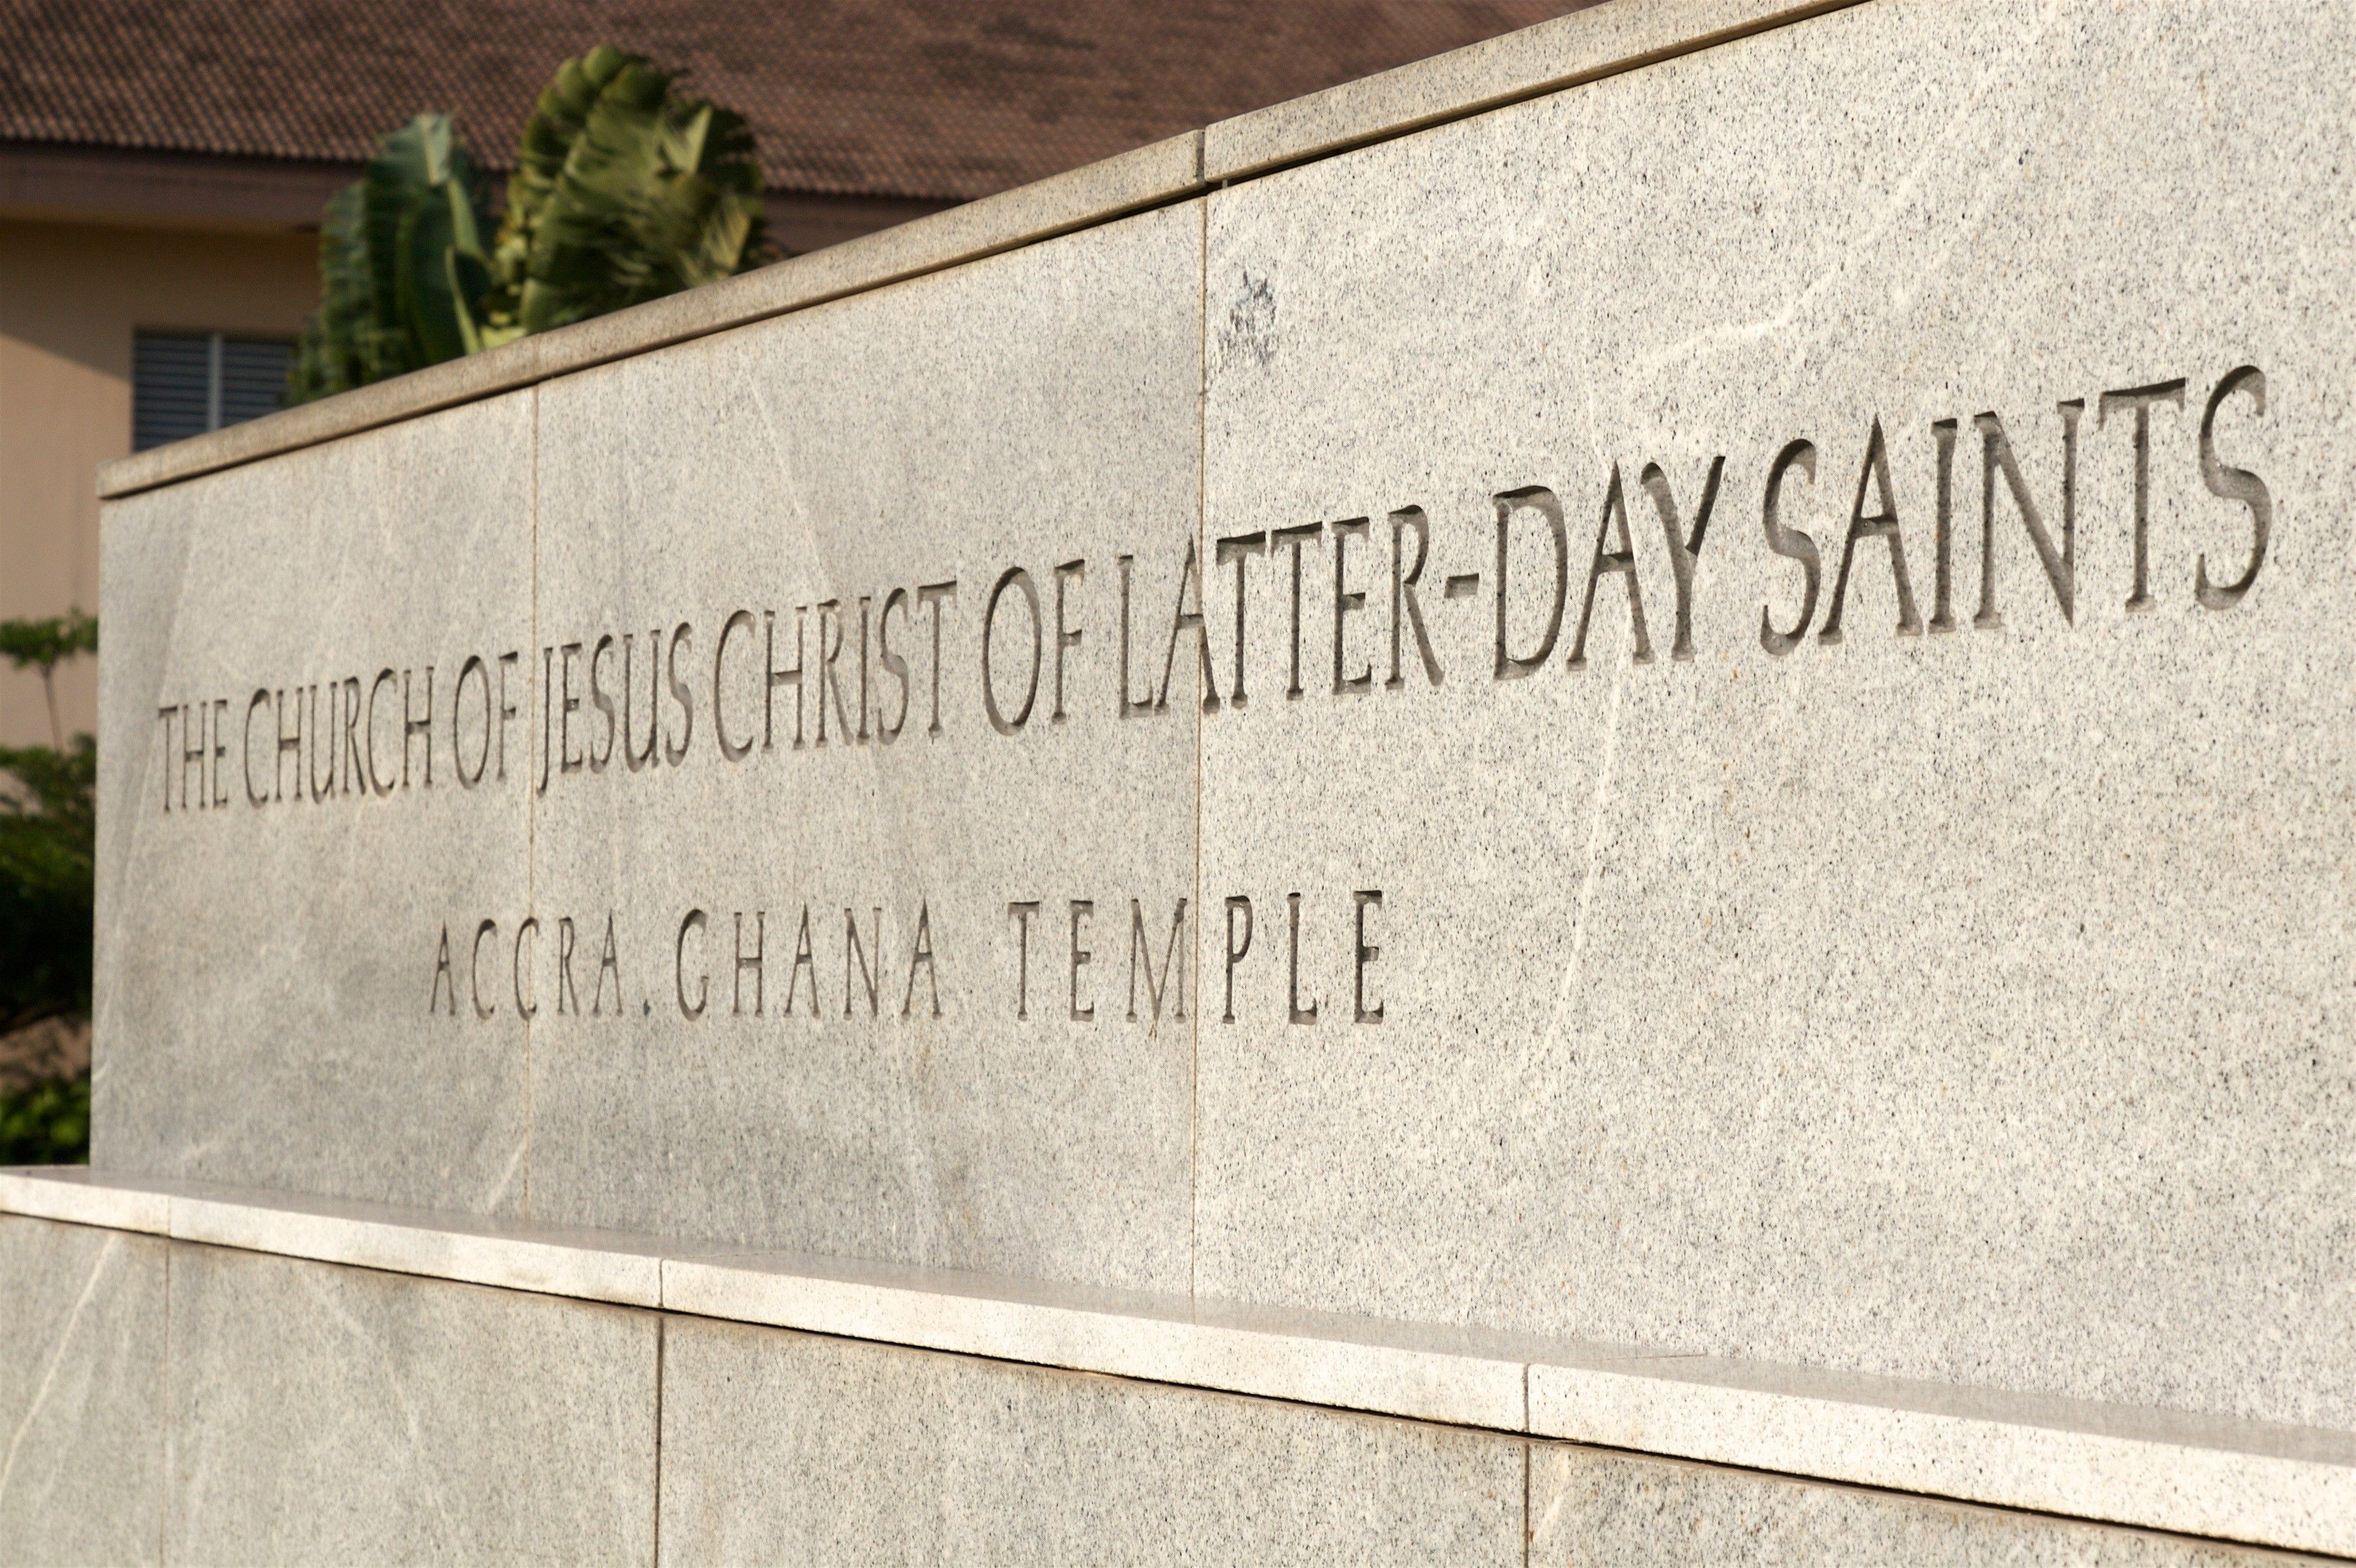 The temple name sign greets members as they come to the Accra Ghana Temple.